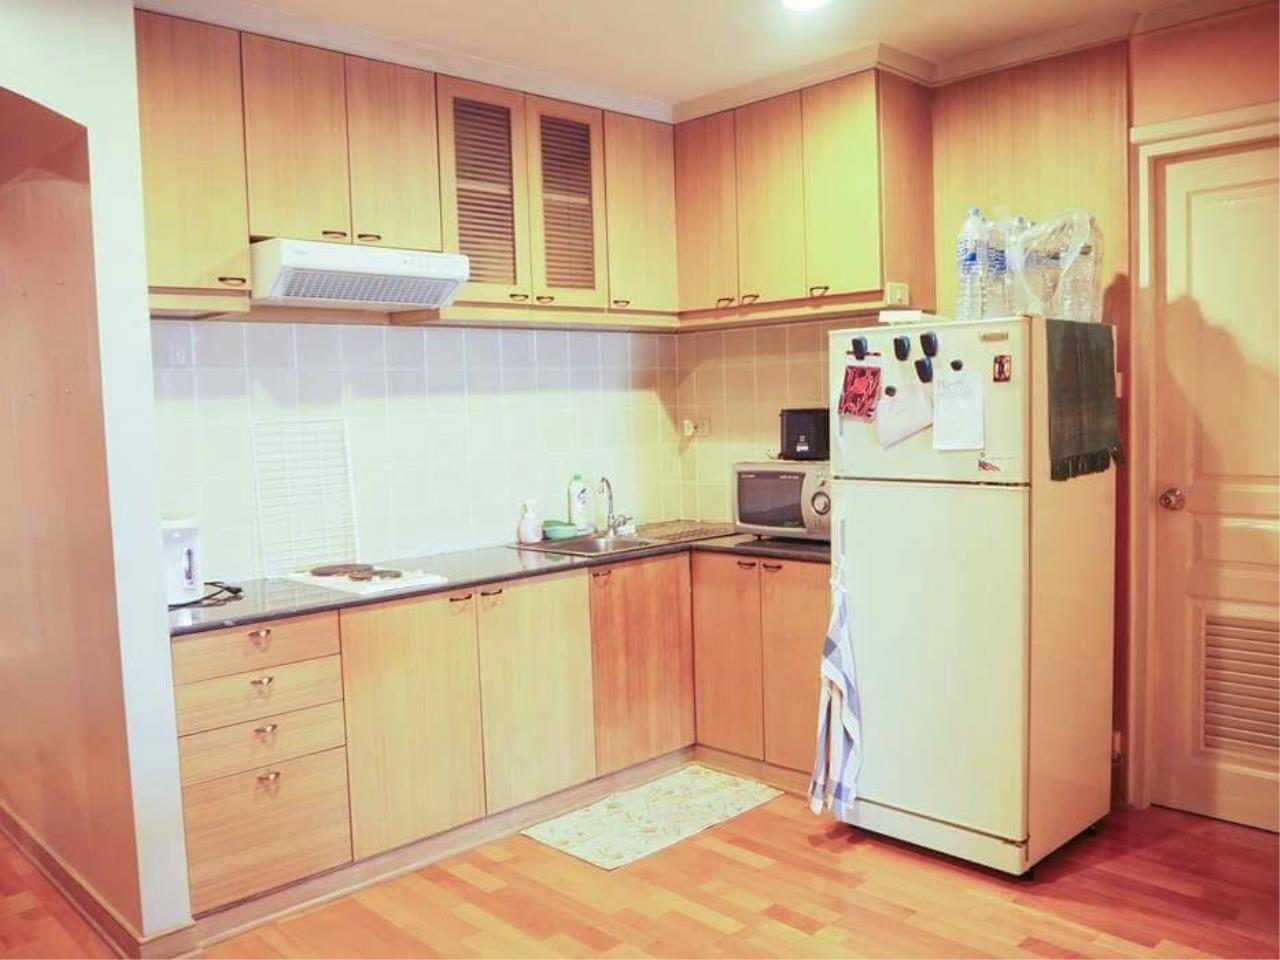 RE/MAX Properties Agency's Cheapest 2 bedroom for renting only 23,000 in Sukhumvit 30/1 2